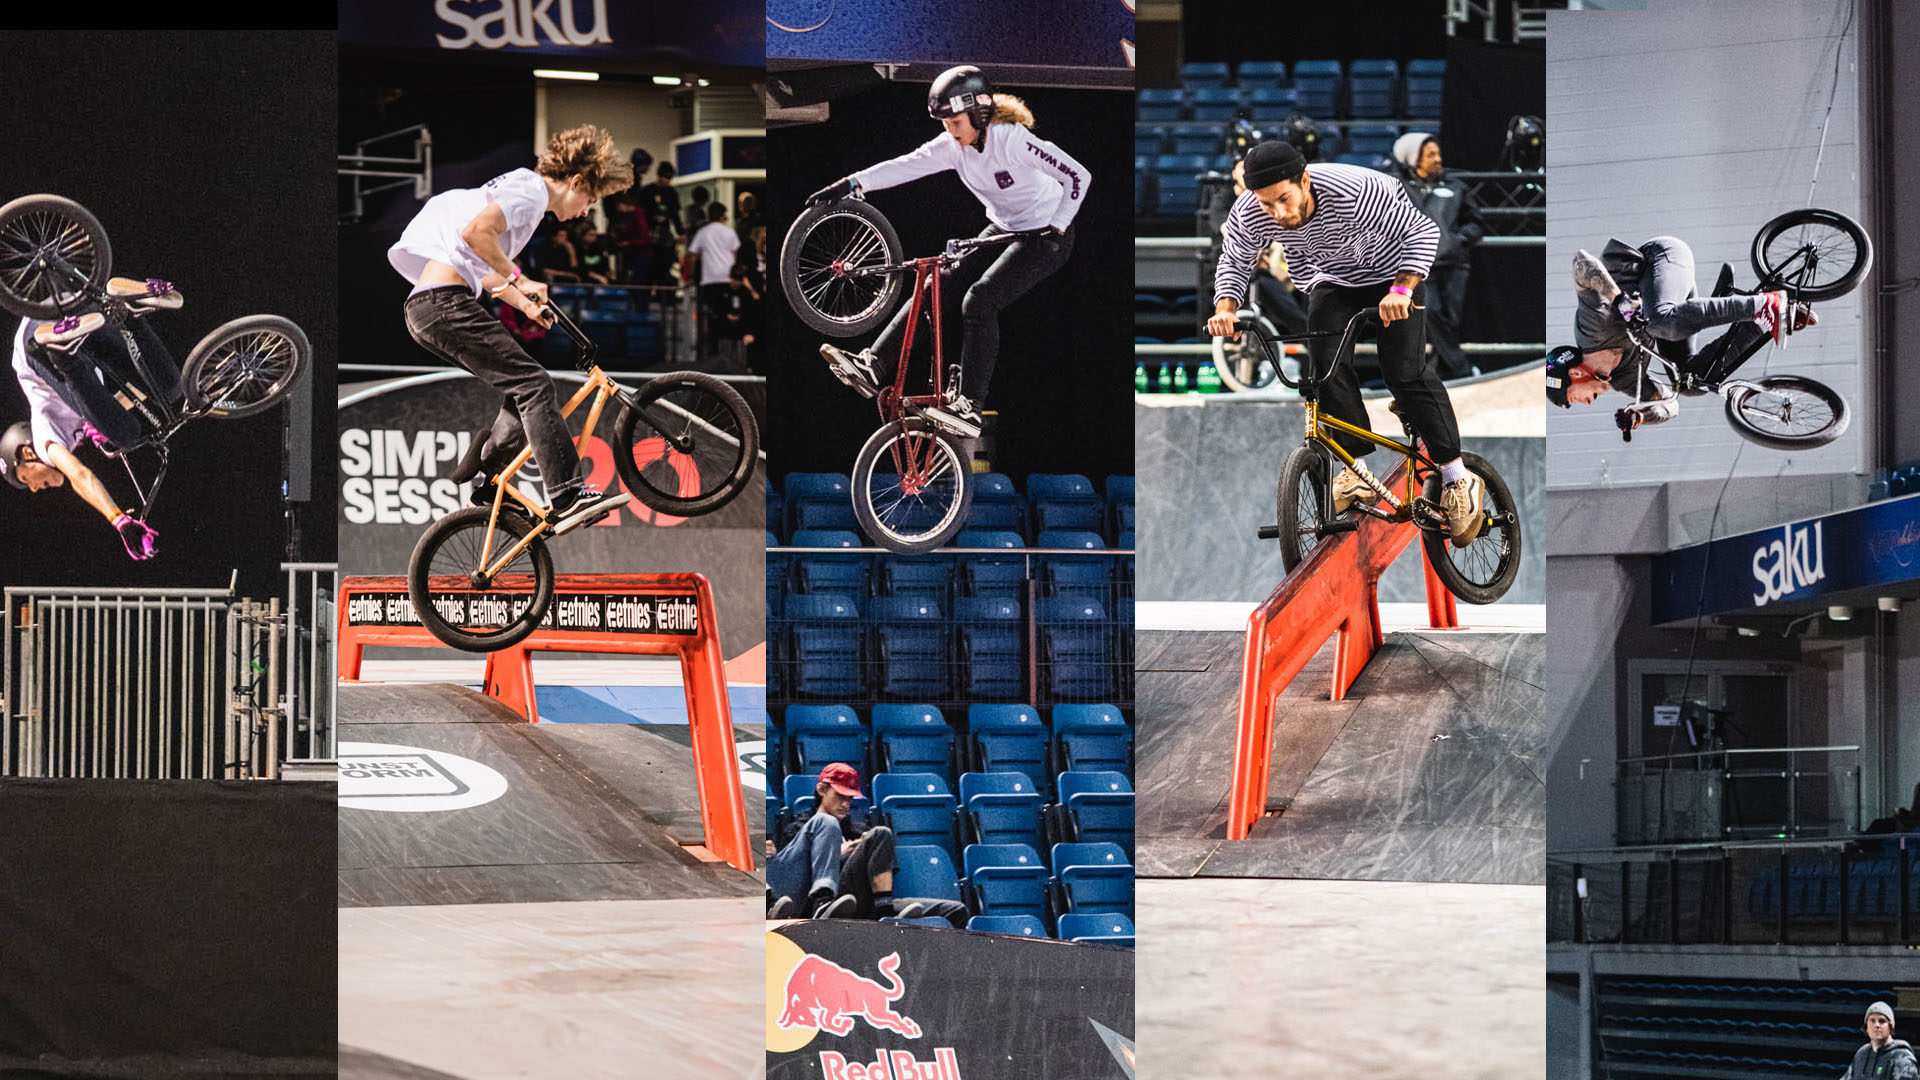 BACKYARD JAM WINNERS: Road to Simple Session 20